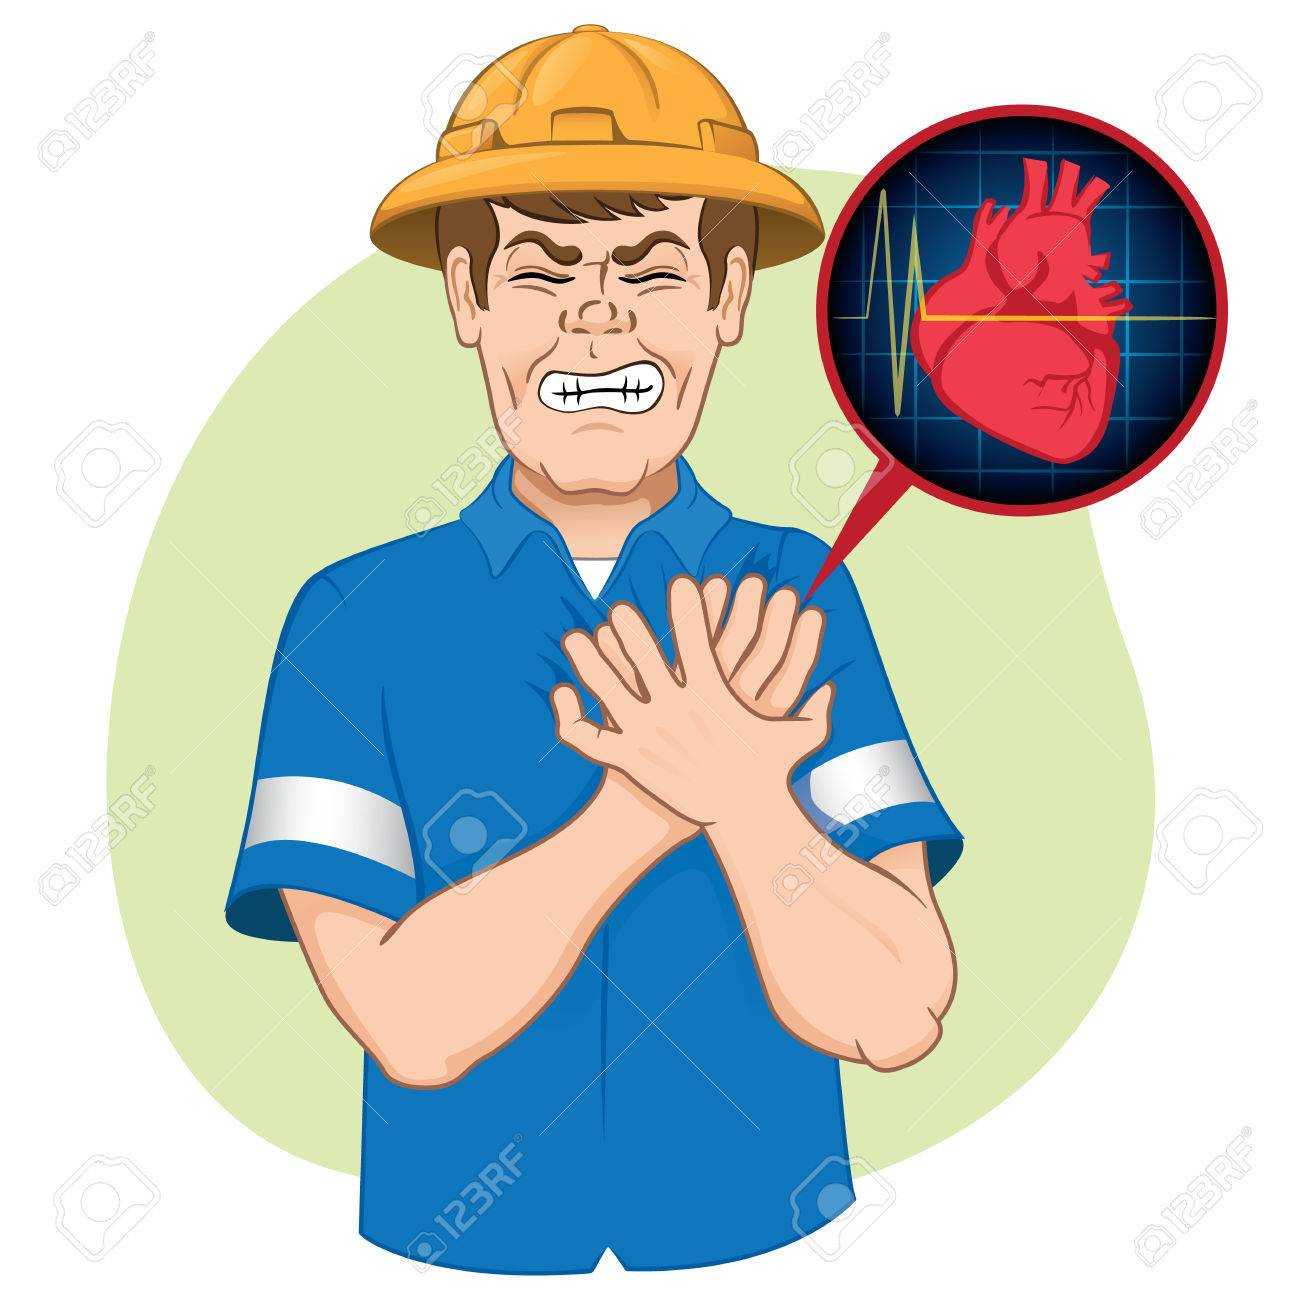 illustration is first aid employee suffering a heart attack illustration is first aid employee suffering a heart attack cpr ideal for relief